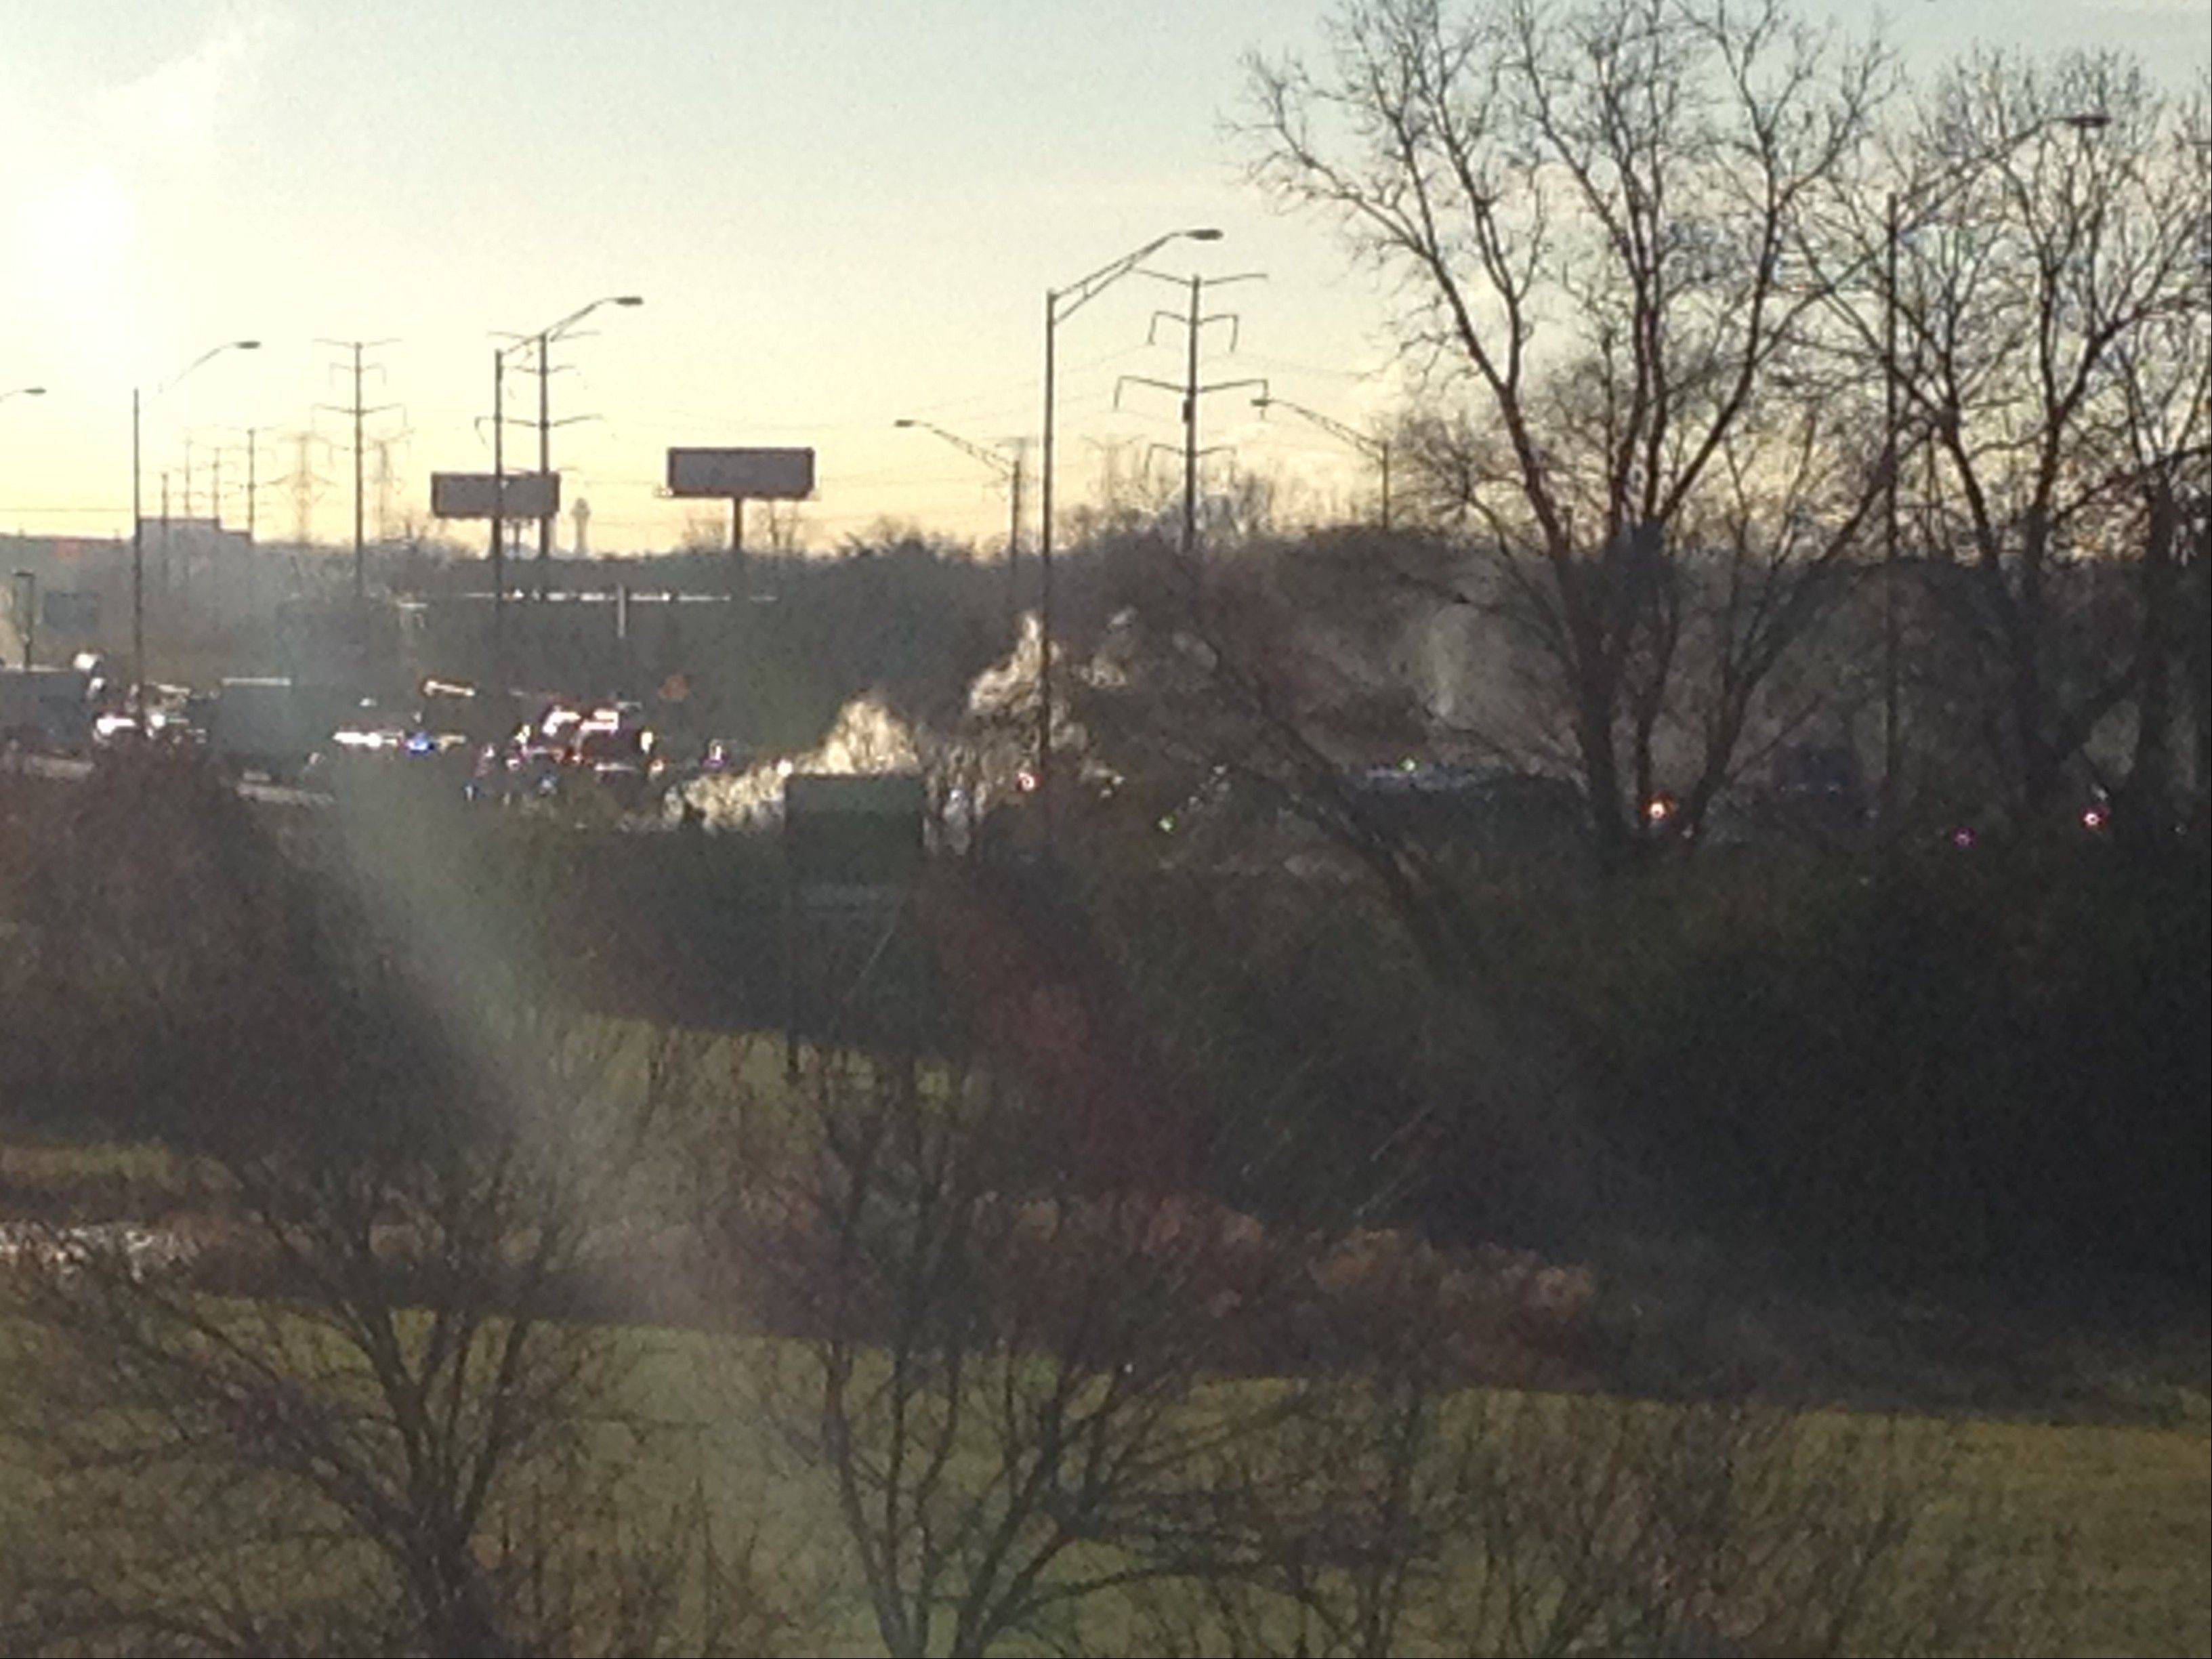 A car fire on westbound I-90 near Arlington Heights Road is causing some delays this morning.